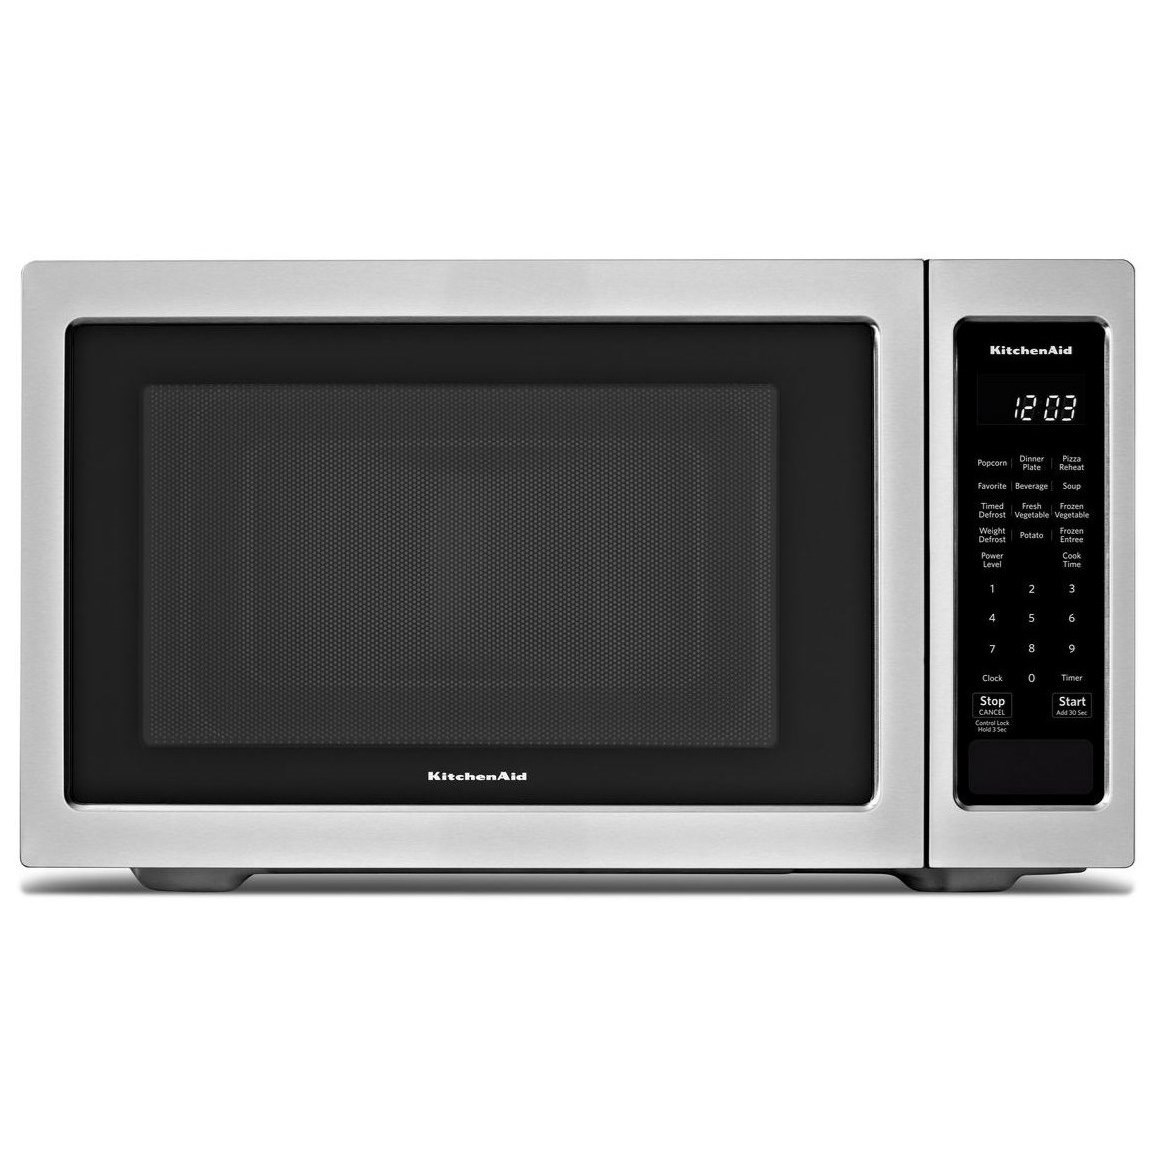 """Microwaves - Kitchenaid 21 3/4"""" Countertop Microwave Oven - 1200W by KitchenAid at Furniture and ApplianceMart"""